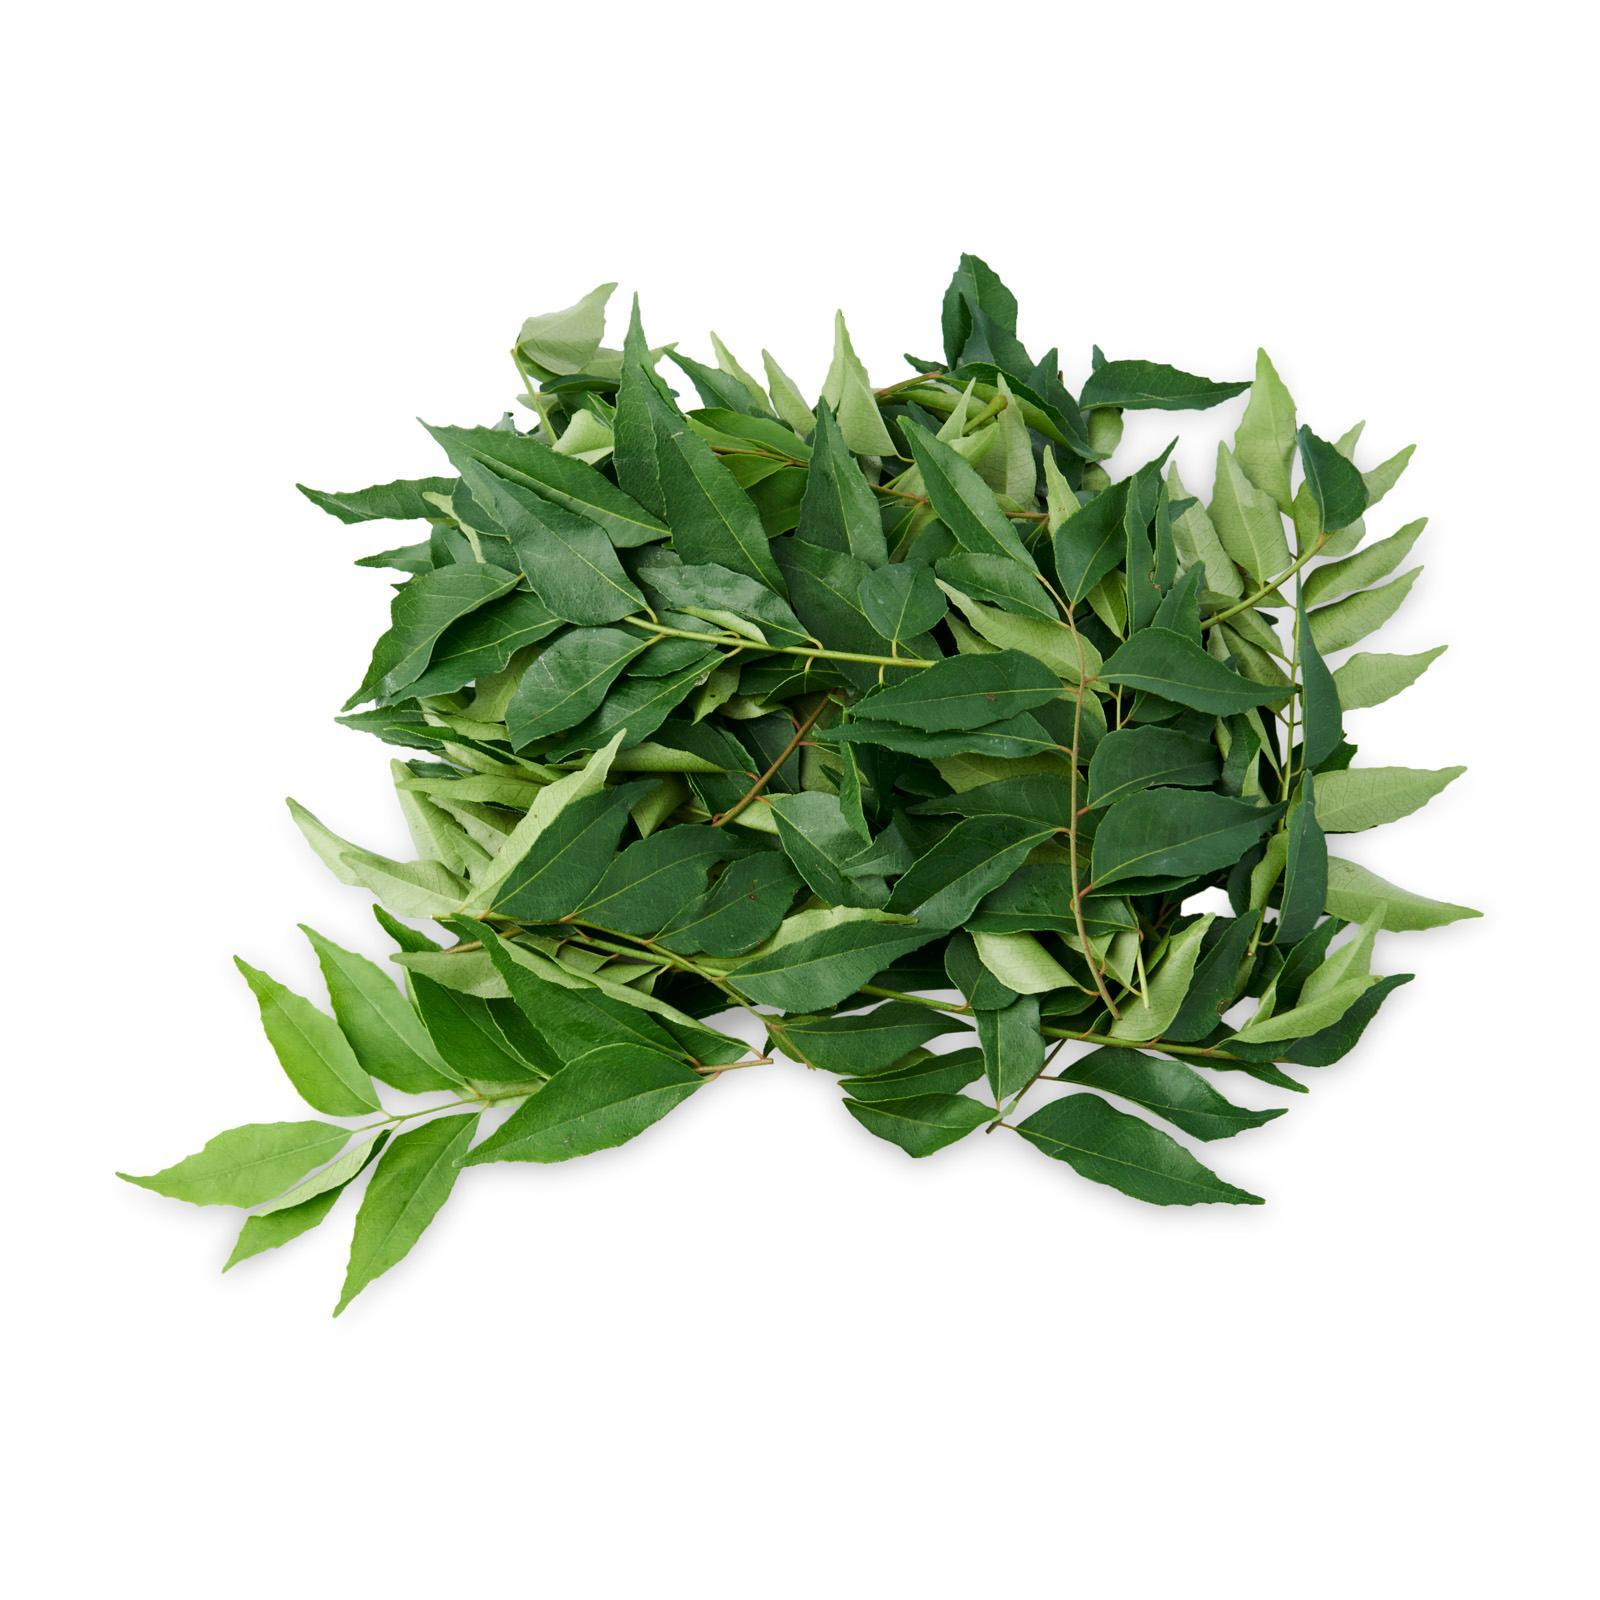 Givvo Curry Leaves By Redmart.